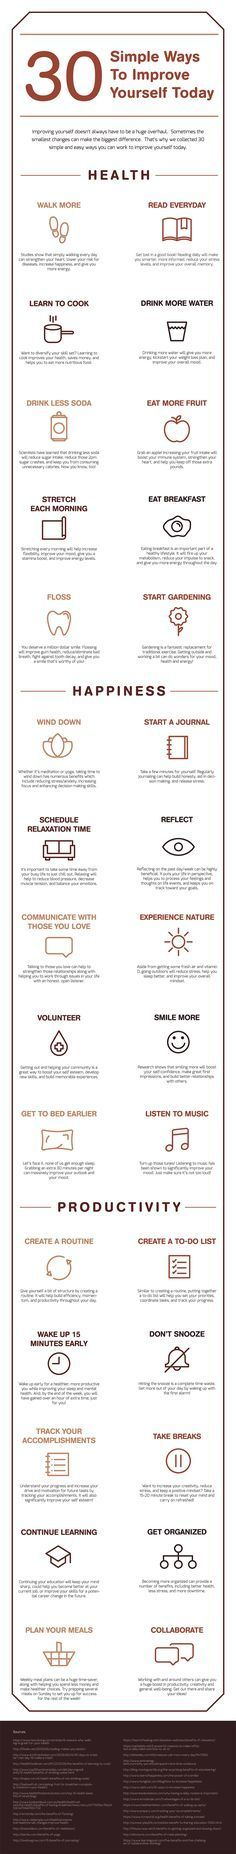 30 Simple Ways to Improve Yourself Today (Infographic) - Oradyne